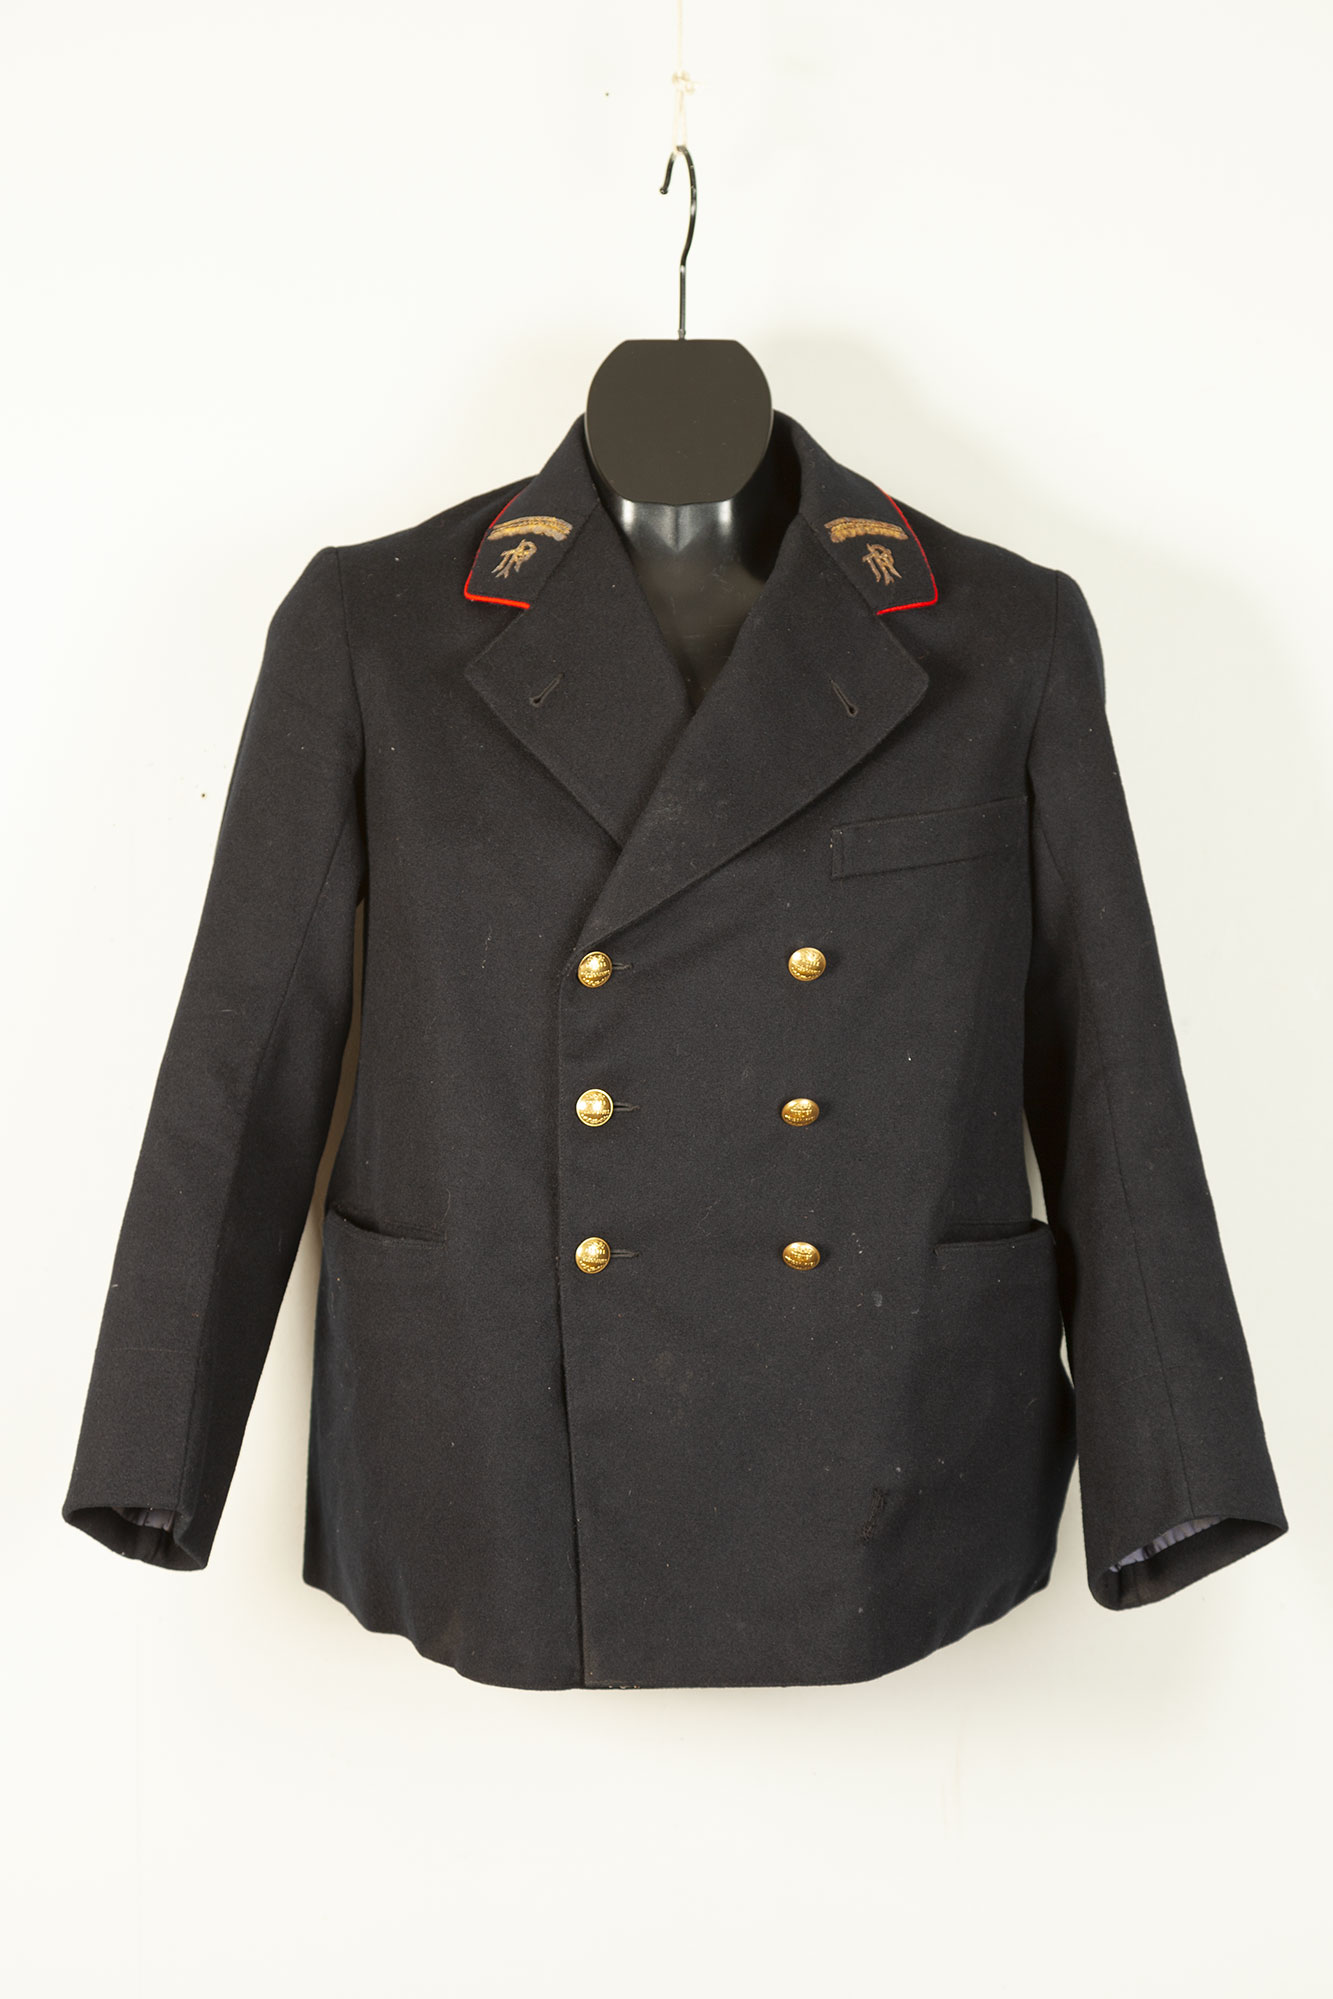 1939 french postman wool jacket